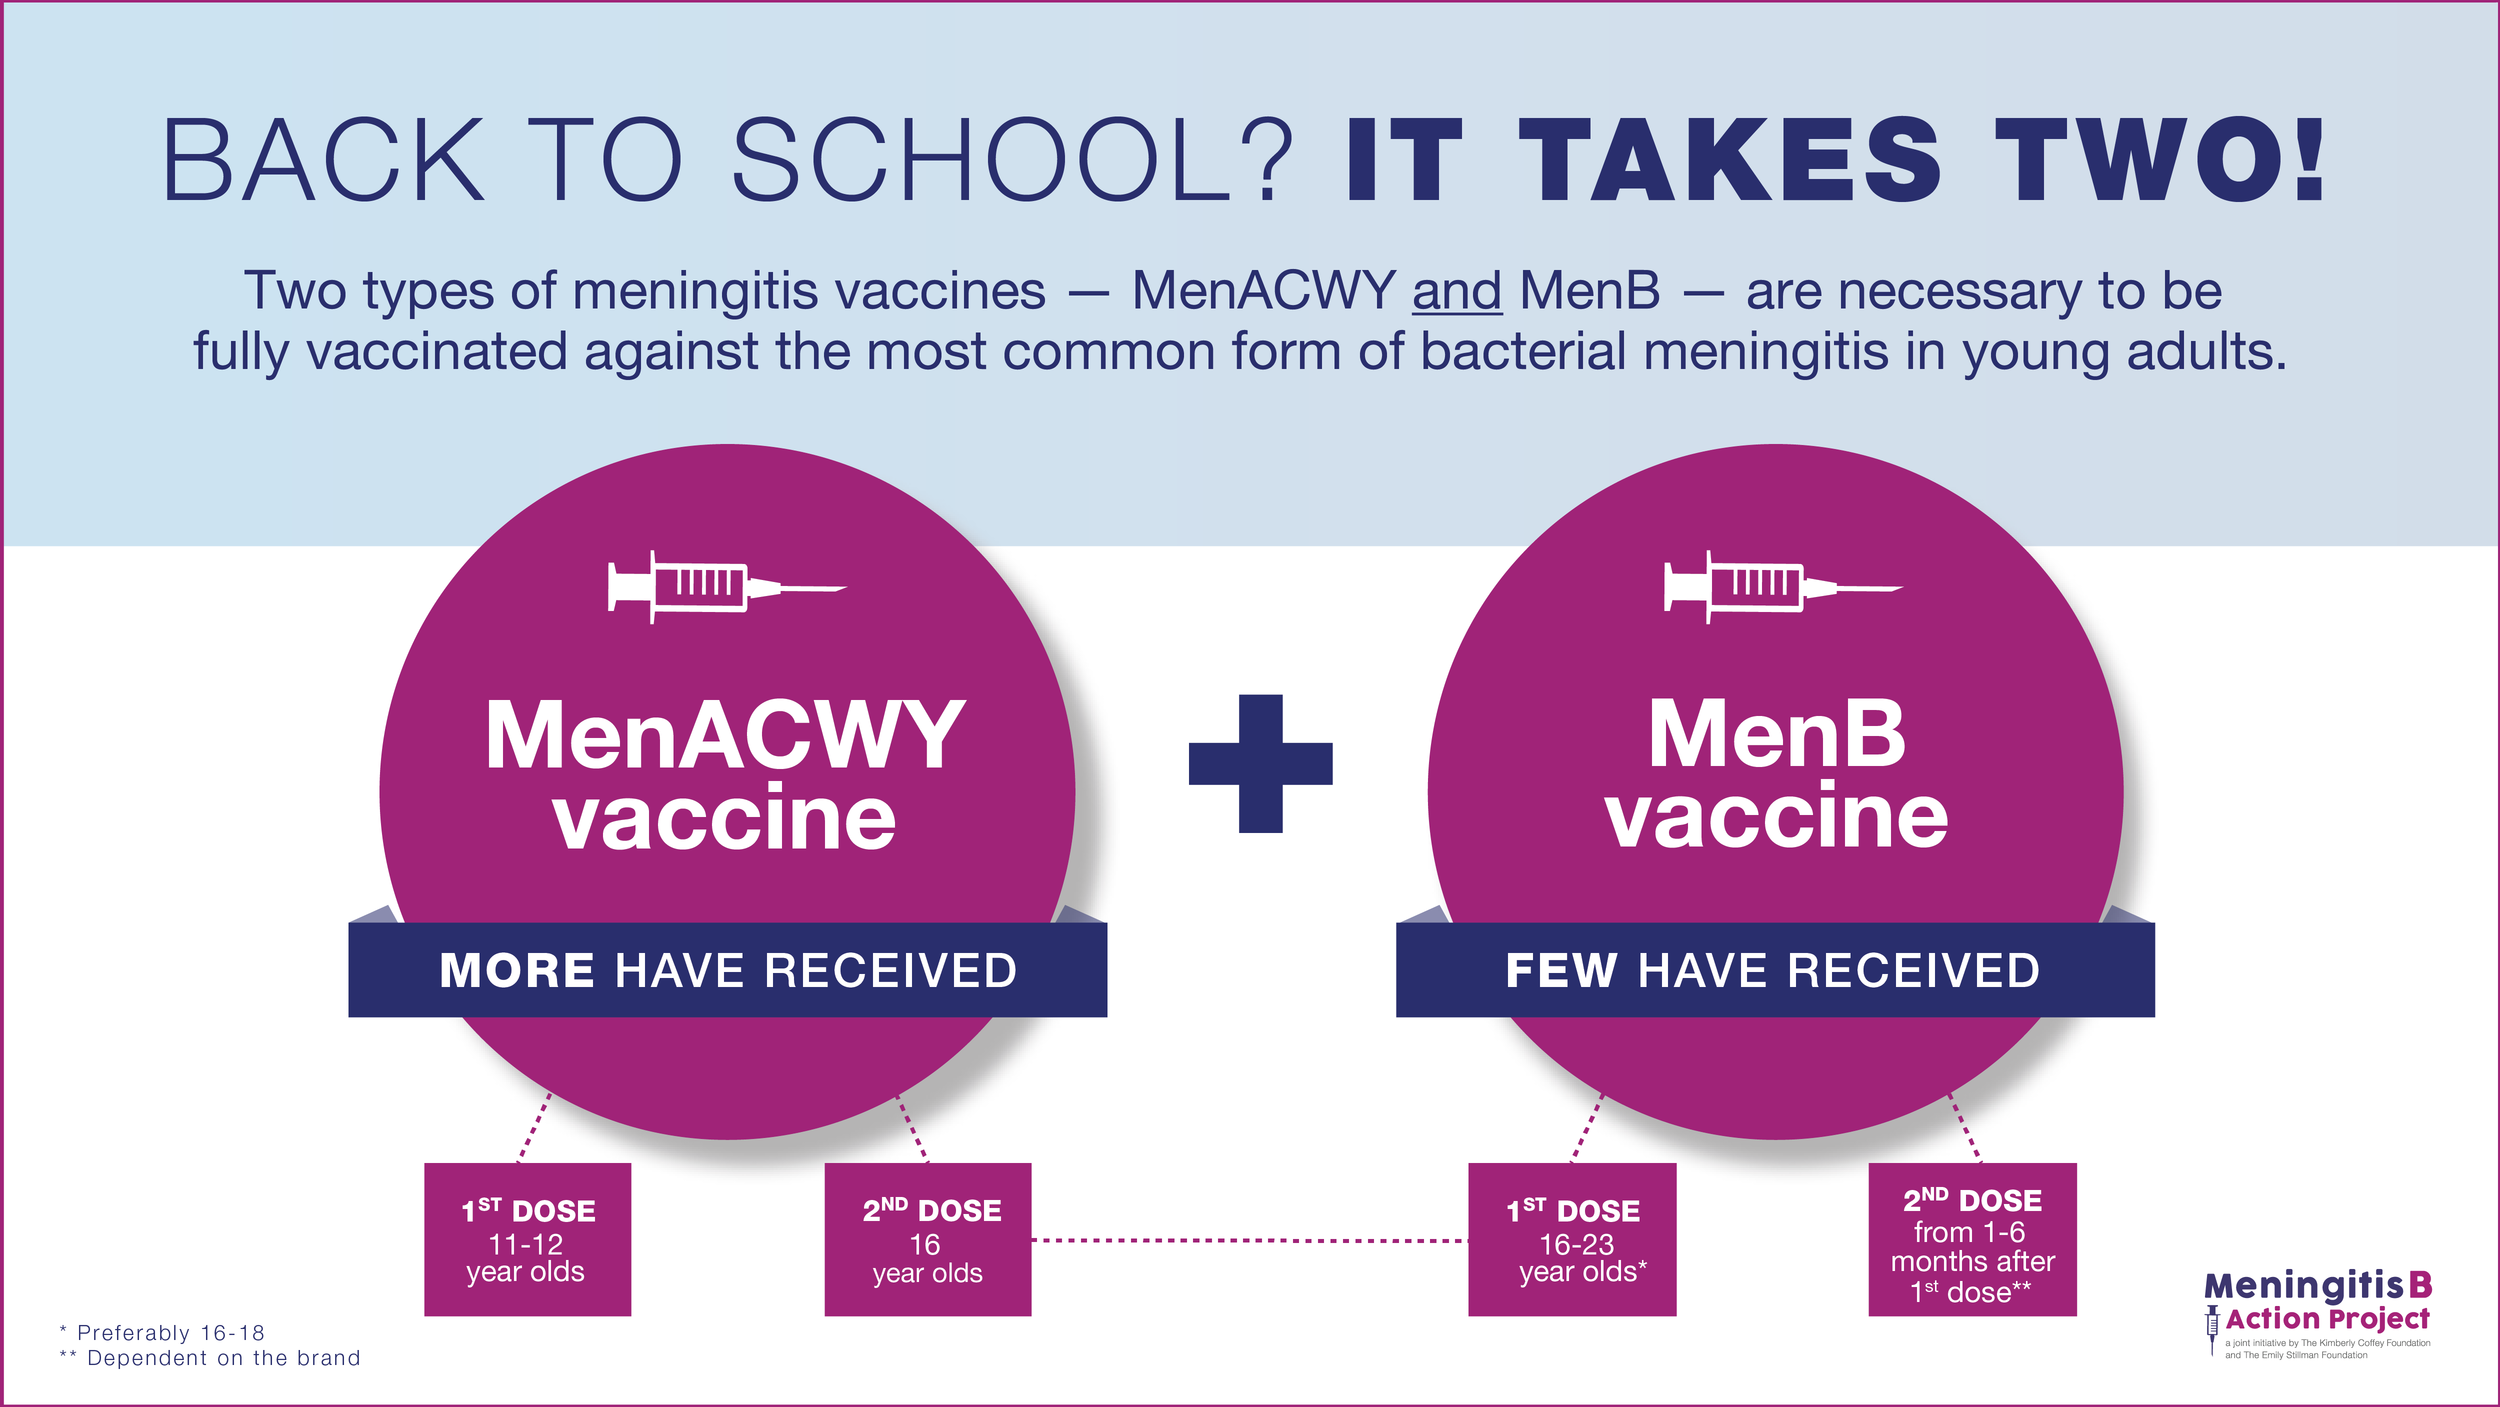 For Twitter    Suggested post: Today, I am helping the Meningitis B Action Project with an important message for all of you getting ready for back to school! Meningitis can be serious and deadly. Young adults ages 16-23 are at higher risk. Talk to your provider about all the necessary doses of the MenACWY and MenB vaccines #bteamwashere #meningitisb #meningitis